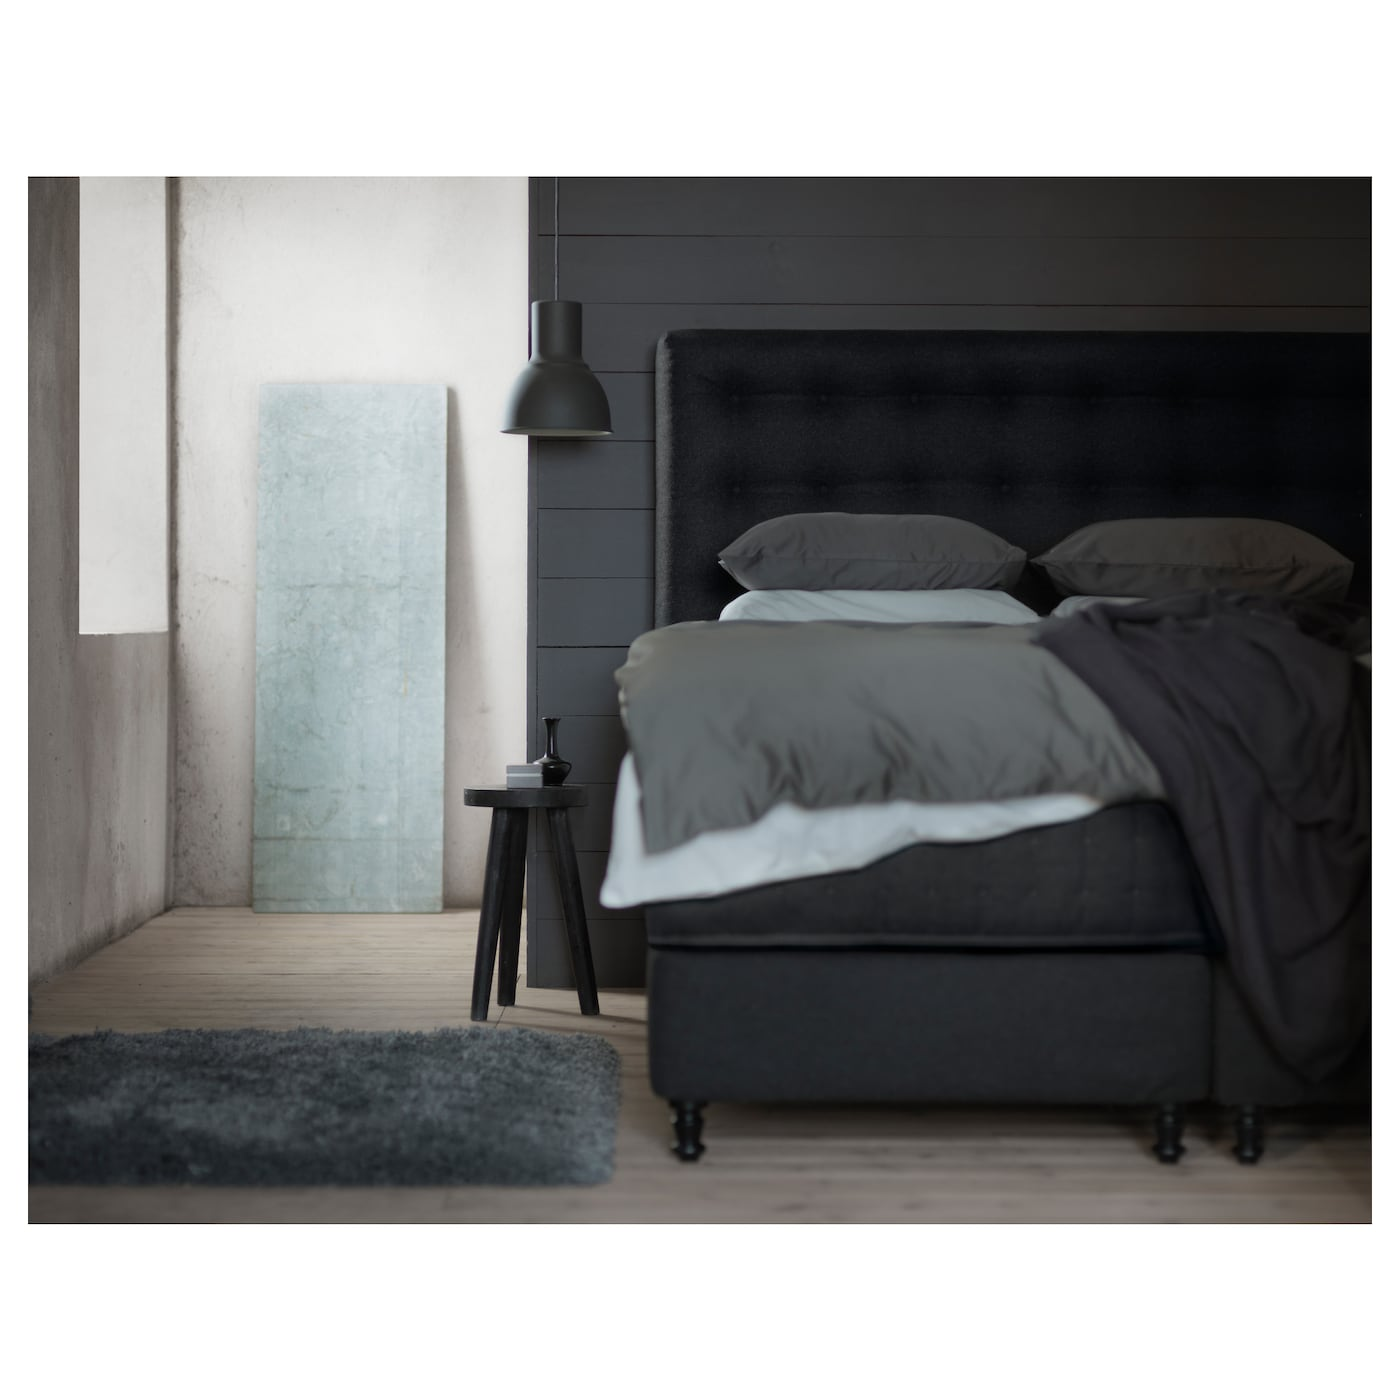 vallavik lit sommier hyllestad ferme tustna gris 180x200 cm ikea. Black Bedroom Furniture Sets. Home Design Ideas